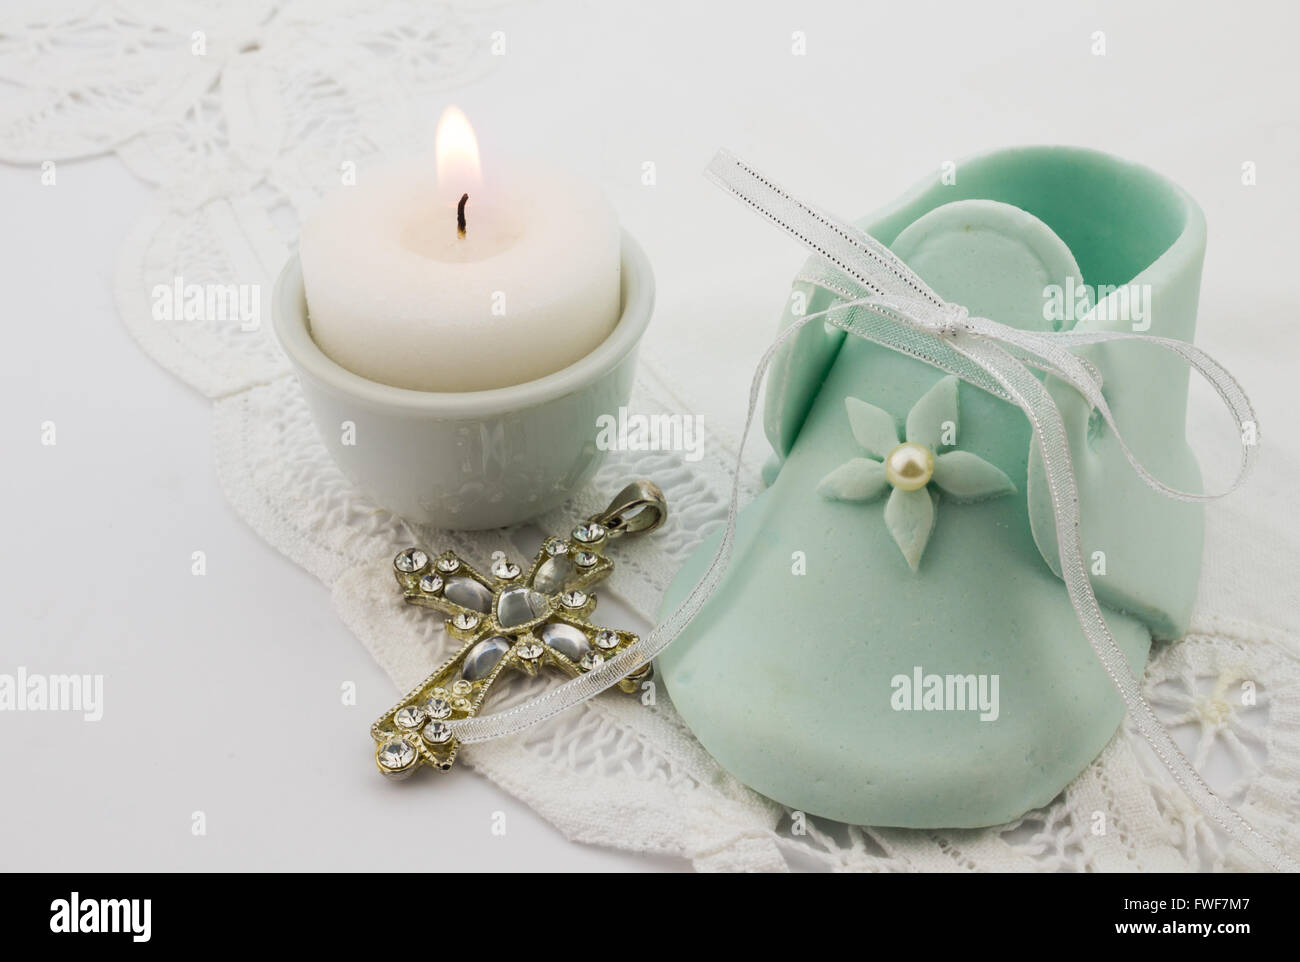 Photo of turquoise fondant baby boot with pearl,crystal cross and lit candle isolated on white lace background - Stock Image